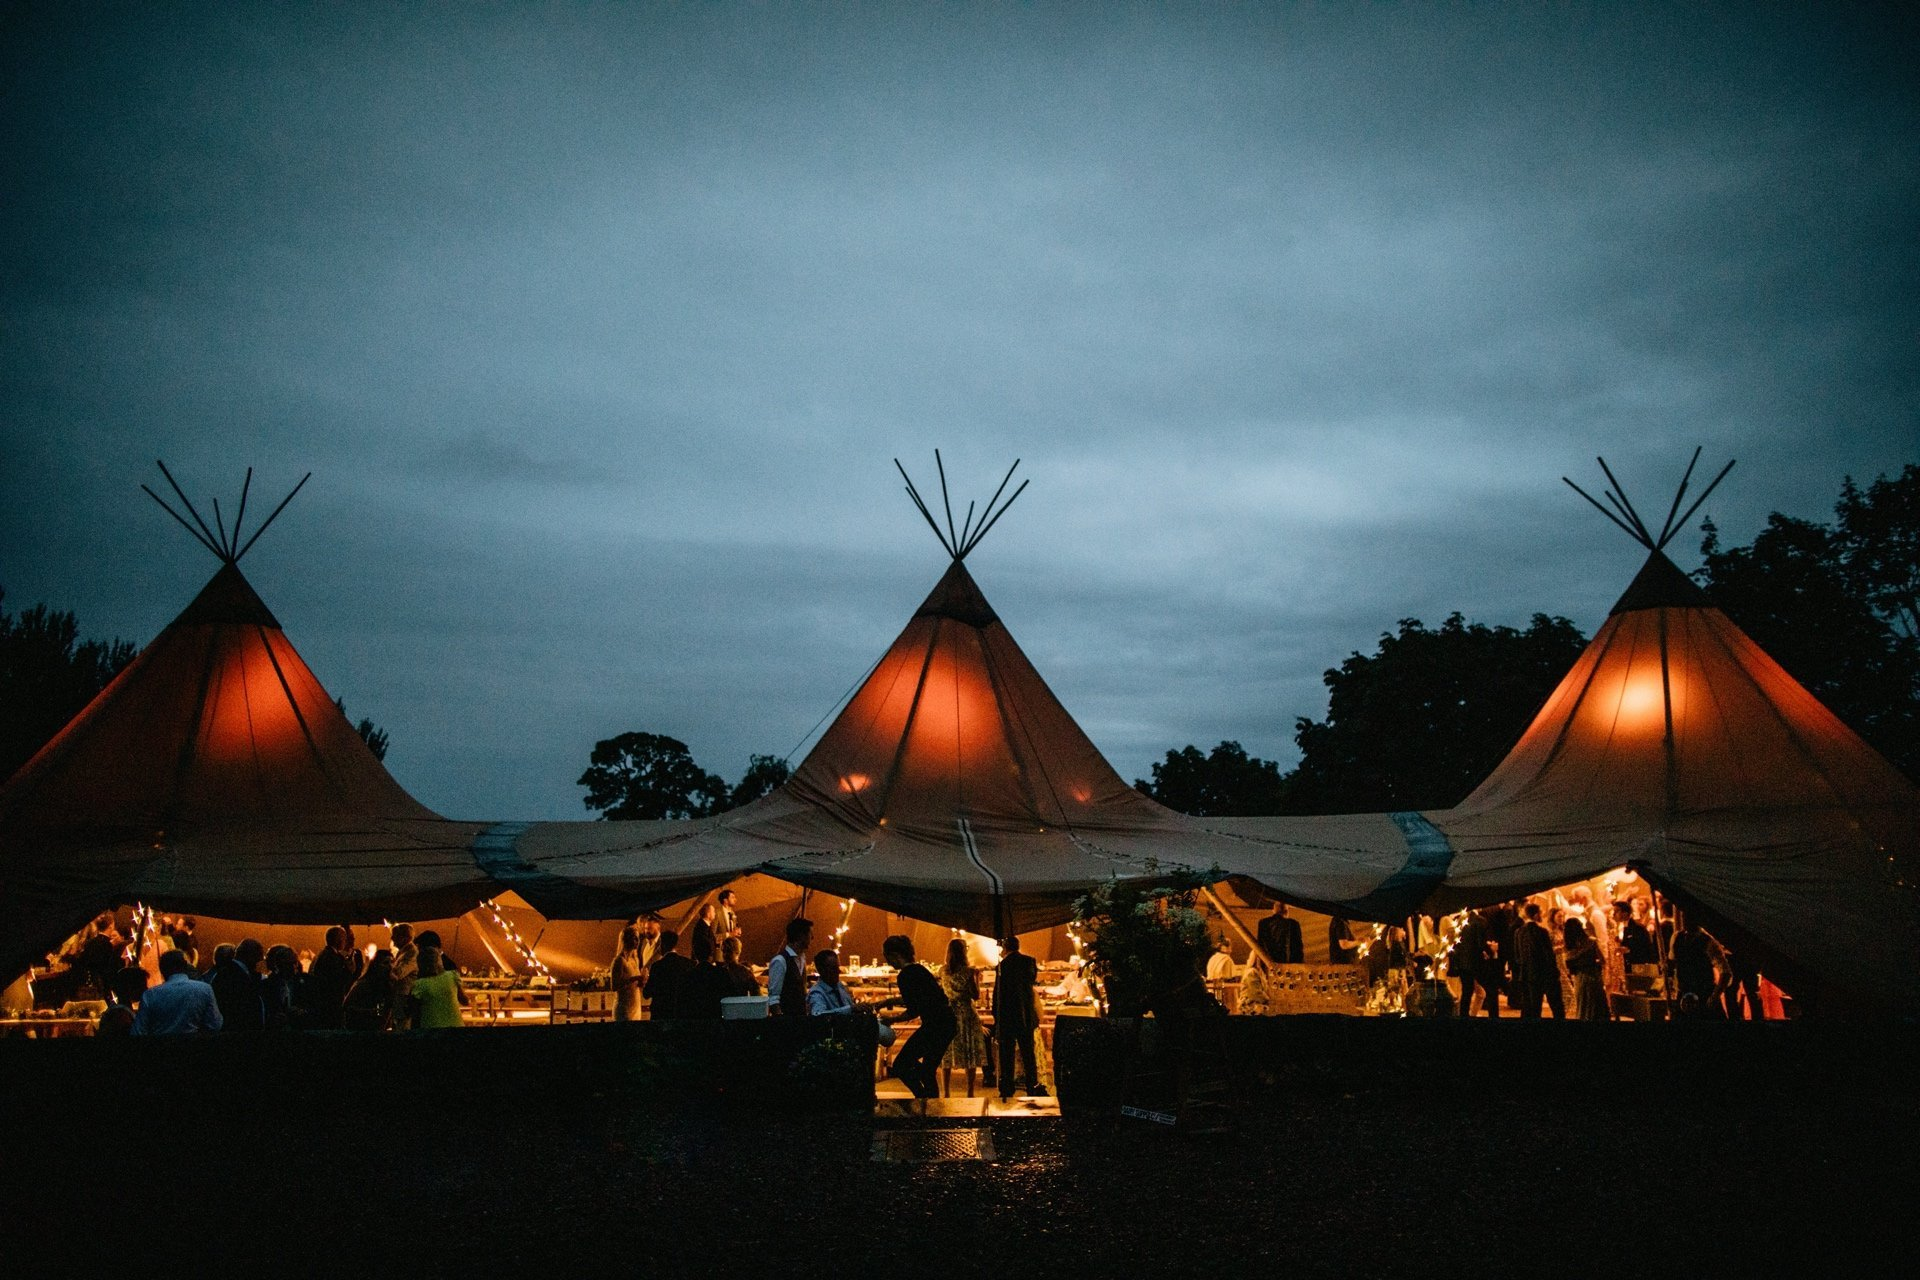 tipis lit up at night